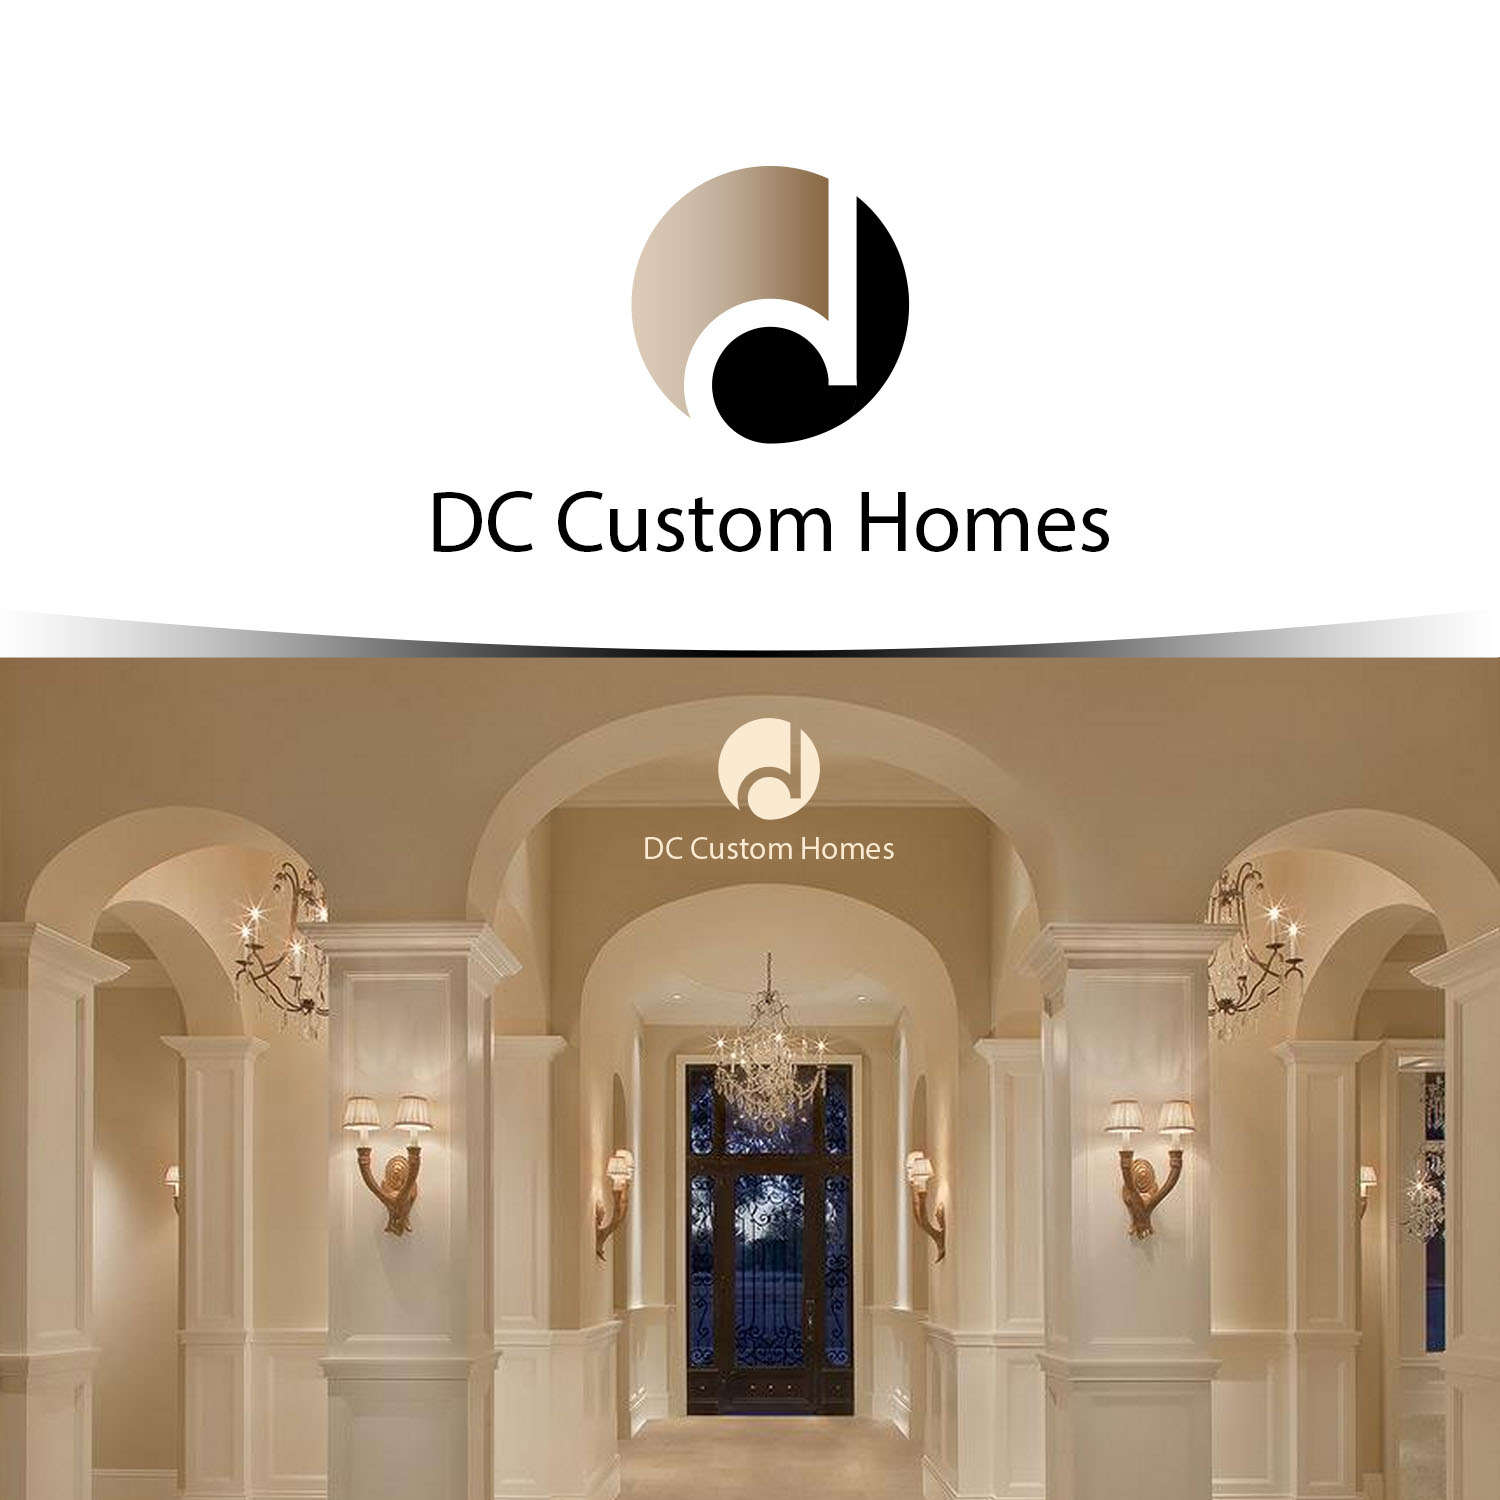 Logo Design by Private User - Entry No. 142 in the Logo Design Contest Creative Logo Design for DC Custom Homes.